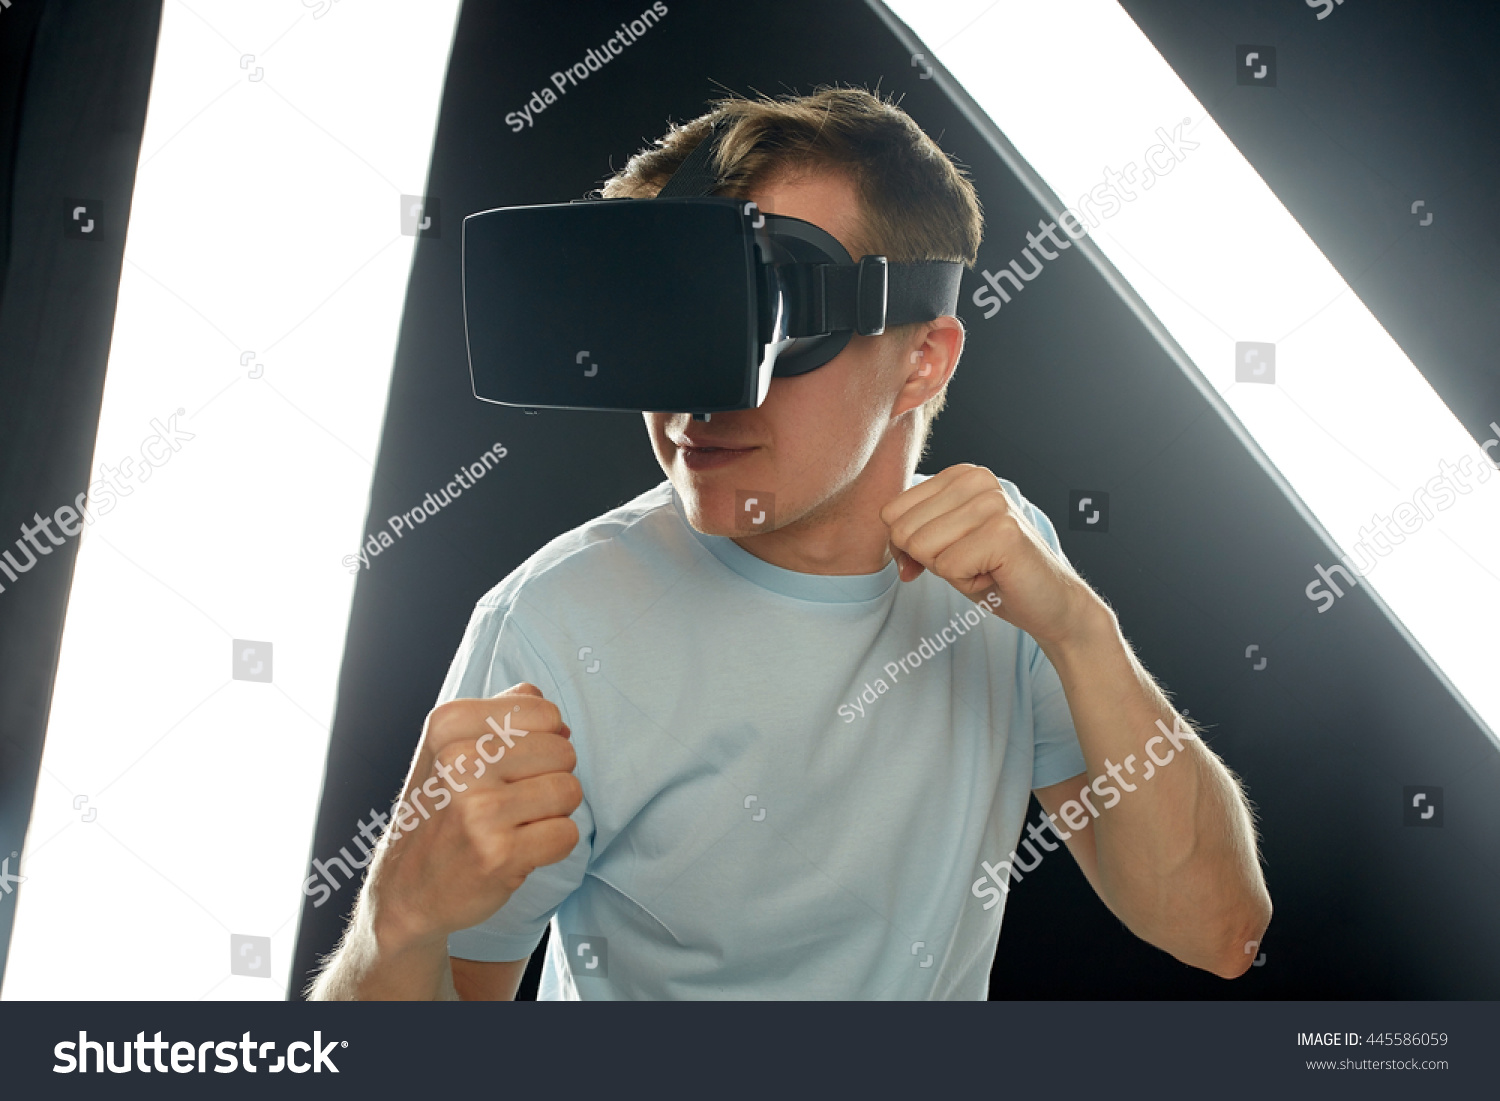 4d90e651b83 3 D Technology Virtual Reality Entertainment Cyberspace Stock Photo ...